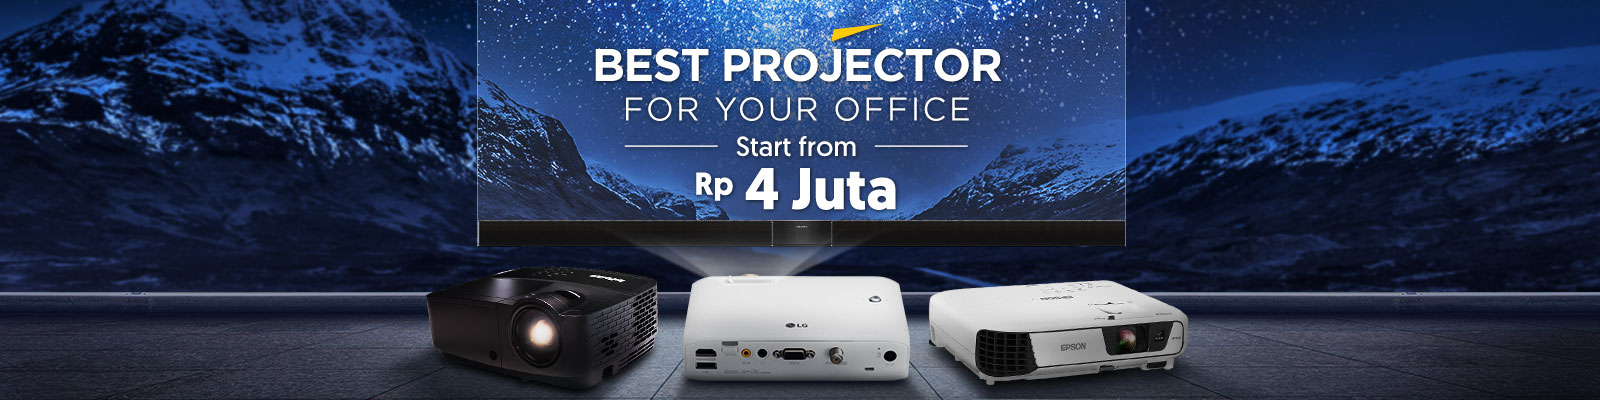 Best Projector For Your Office